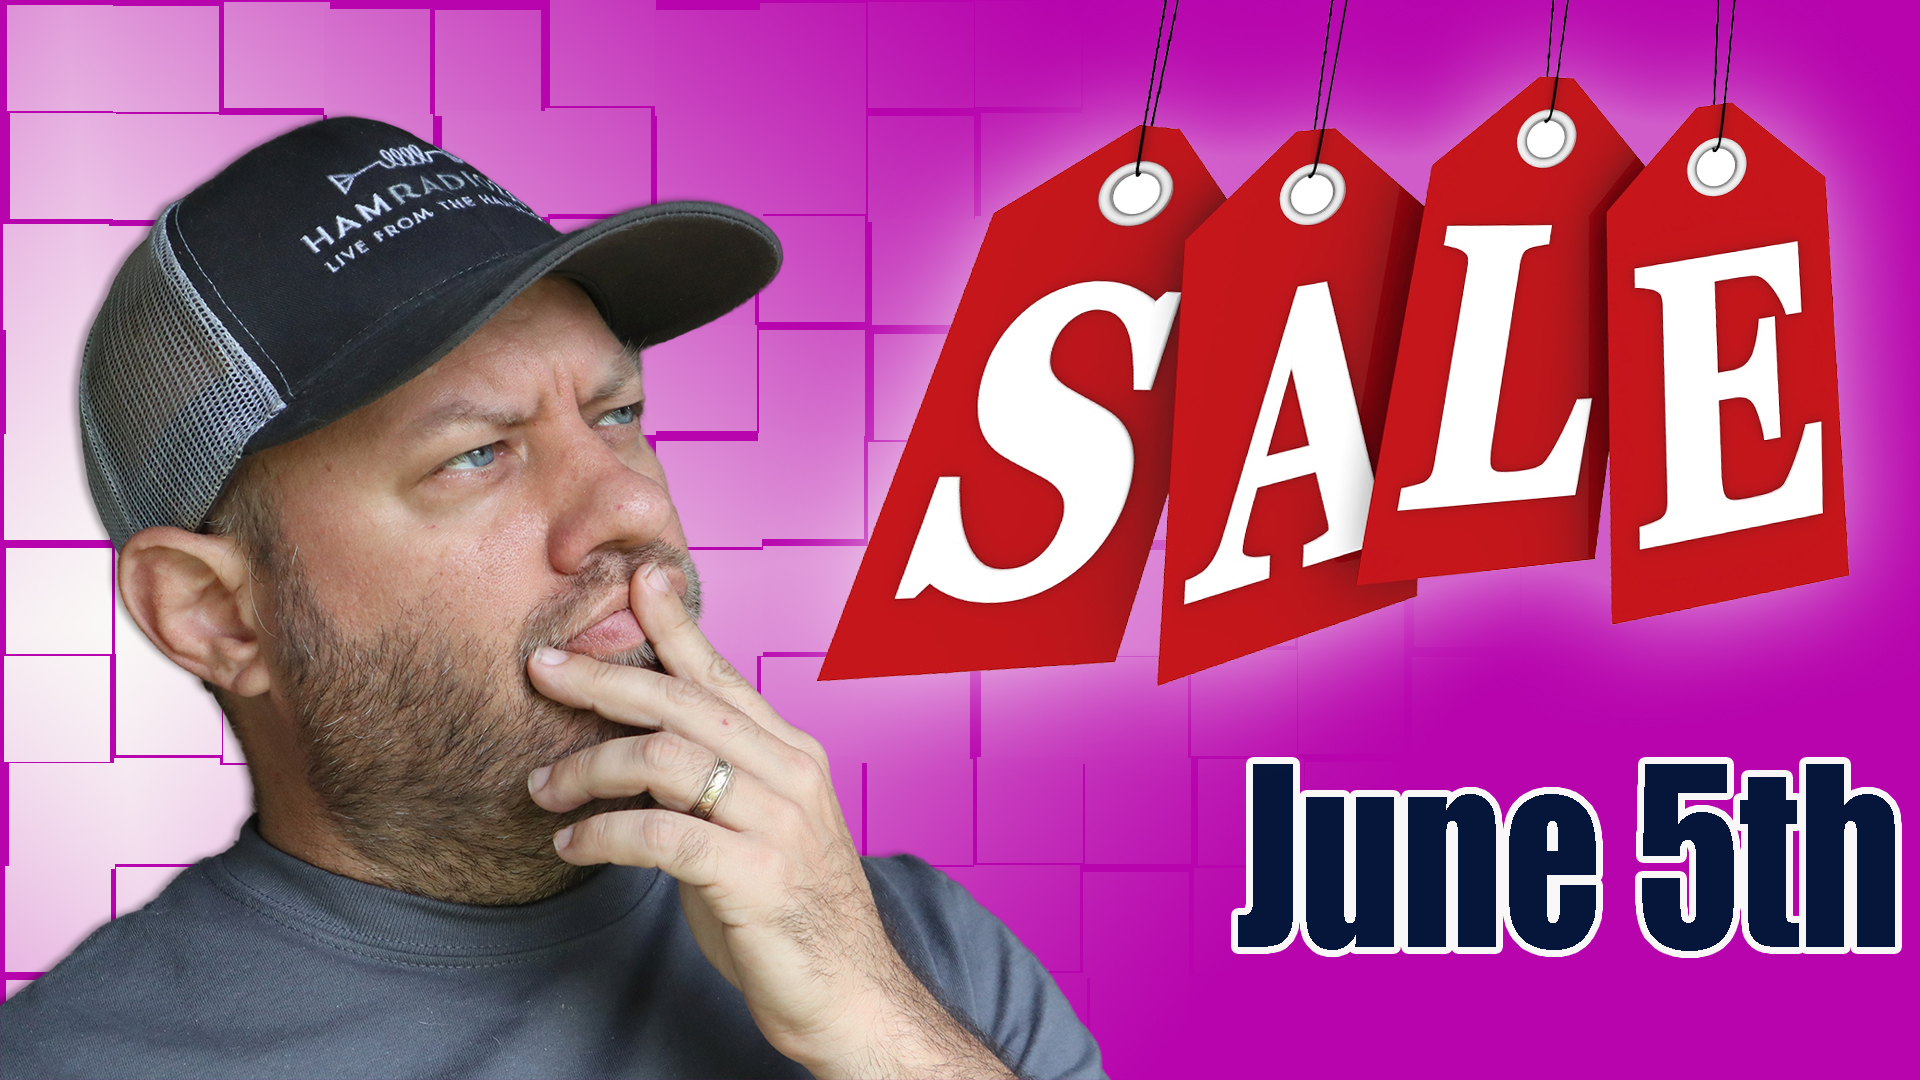 Episode 390: Ham Radio Shopping Deals for June 5th | New Items Revealed!